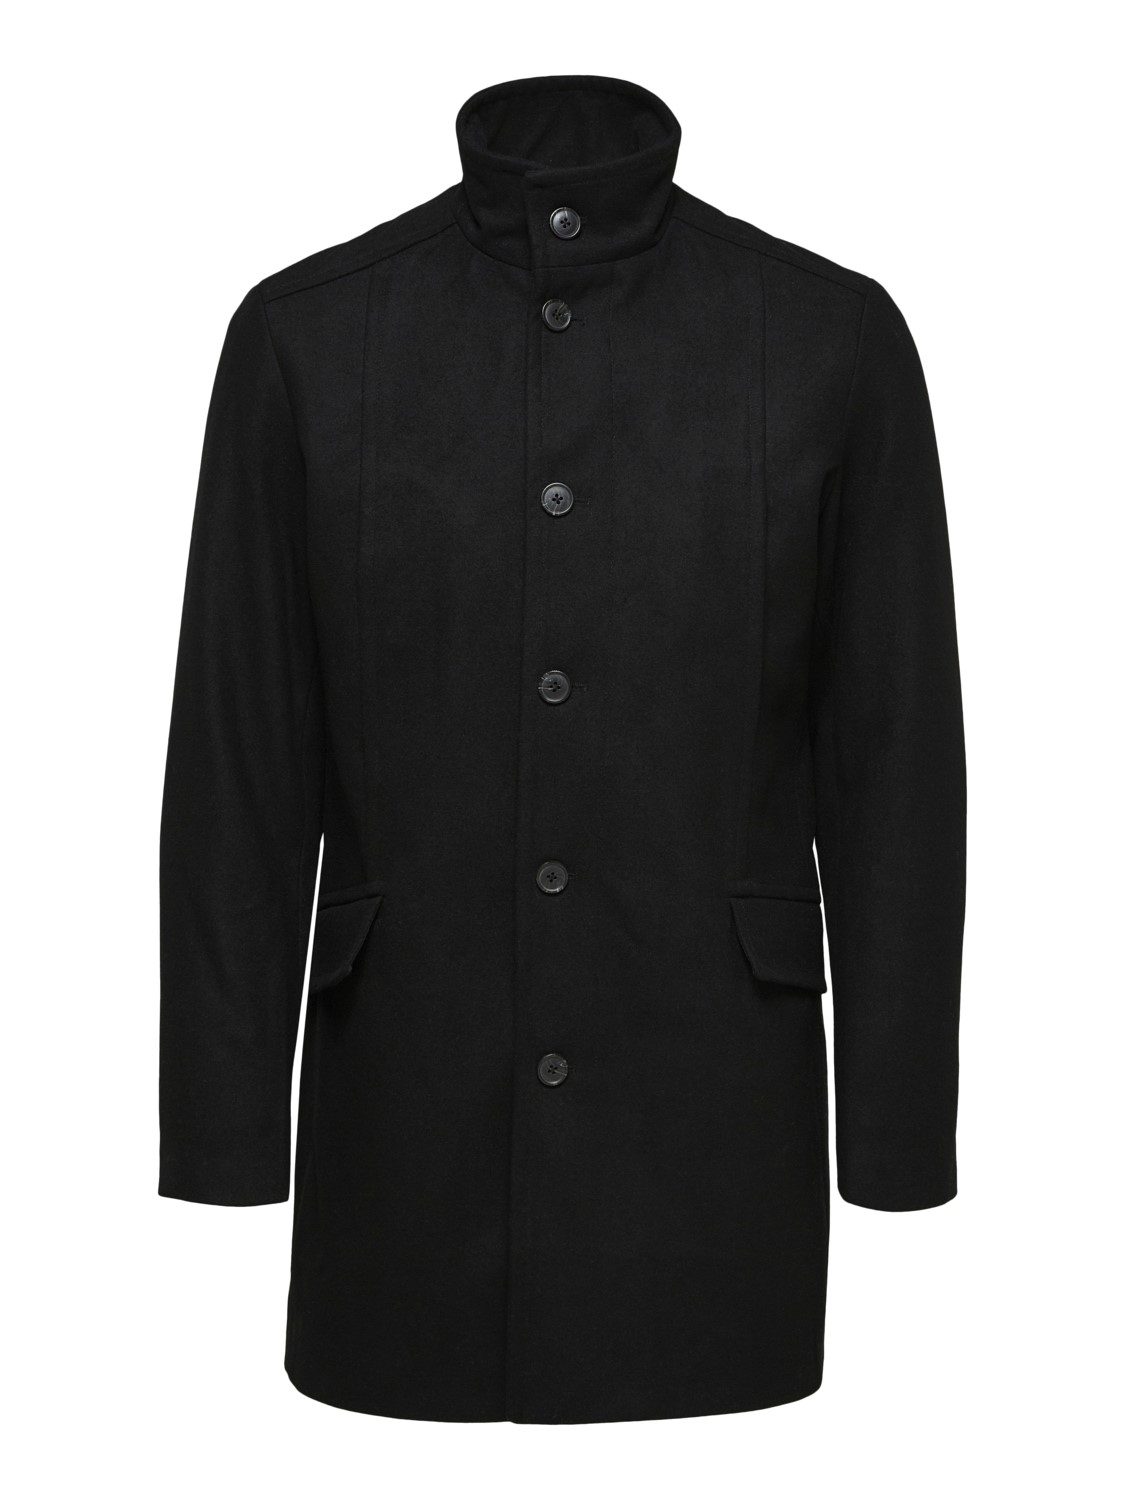 SELECTED - SLHMORRISON WOOL COAT BLACK | Gate36 Hobro